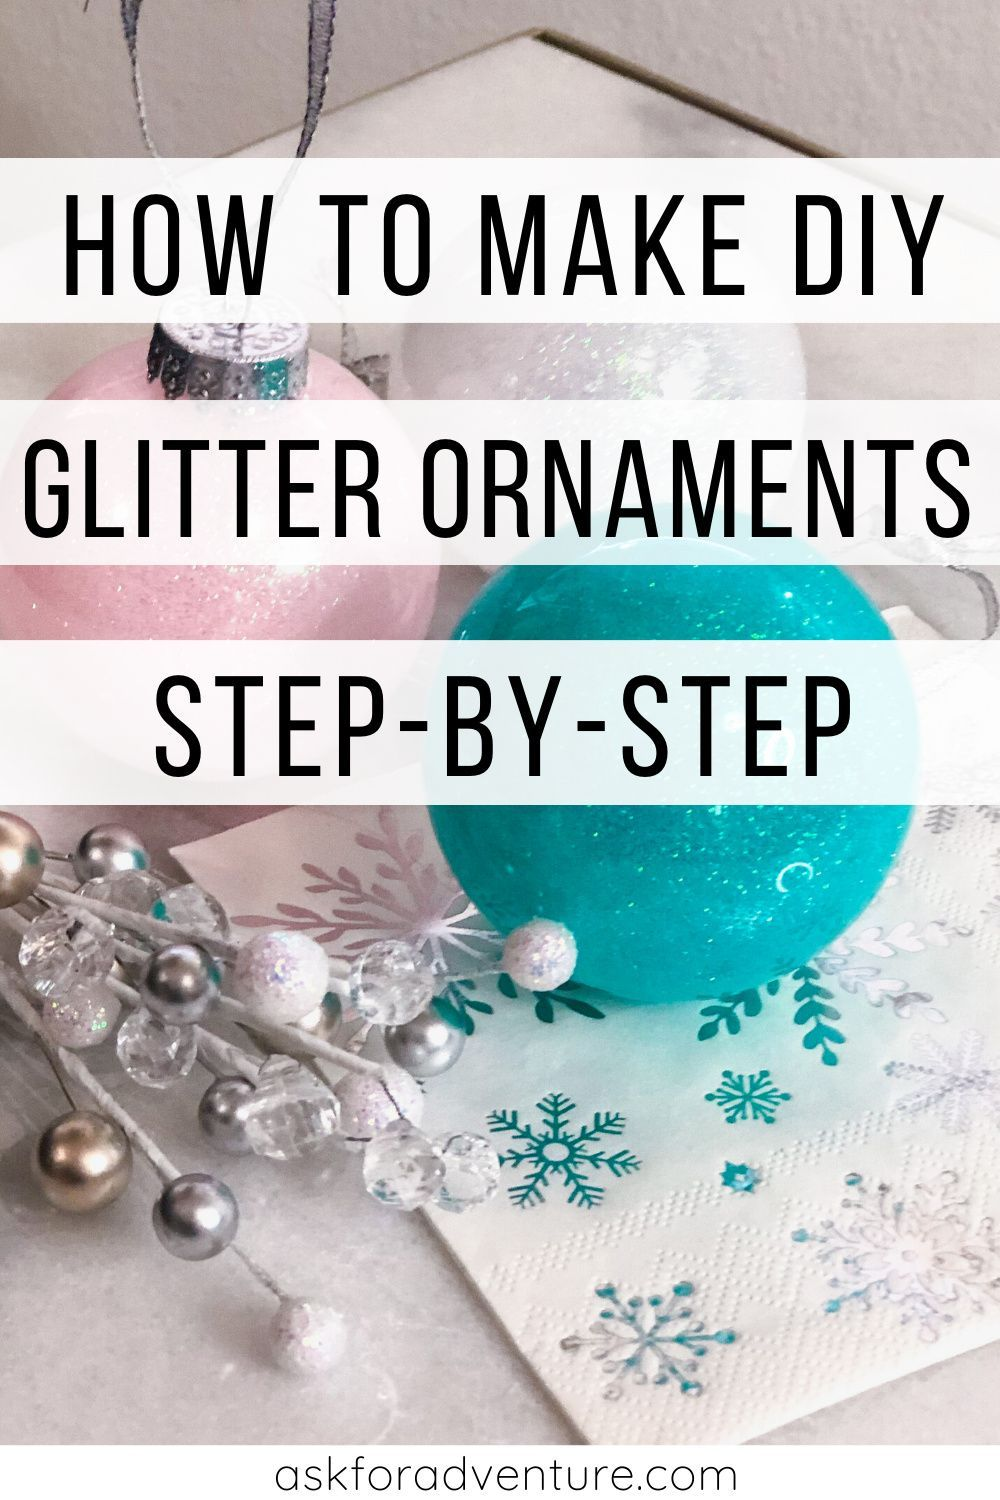 How To Make Glitter Ornaments With Polycrylic Step By Step How To Make Glitter Glitter Ornaments Diy Glitter Ornaments